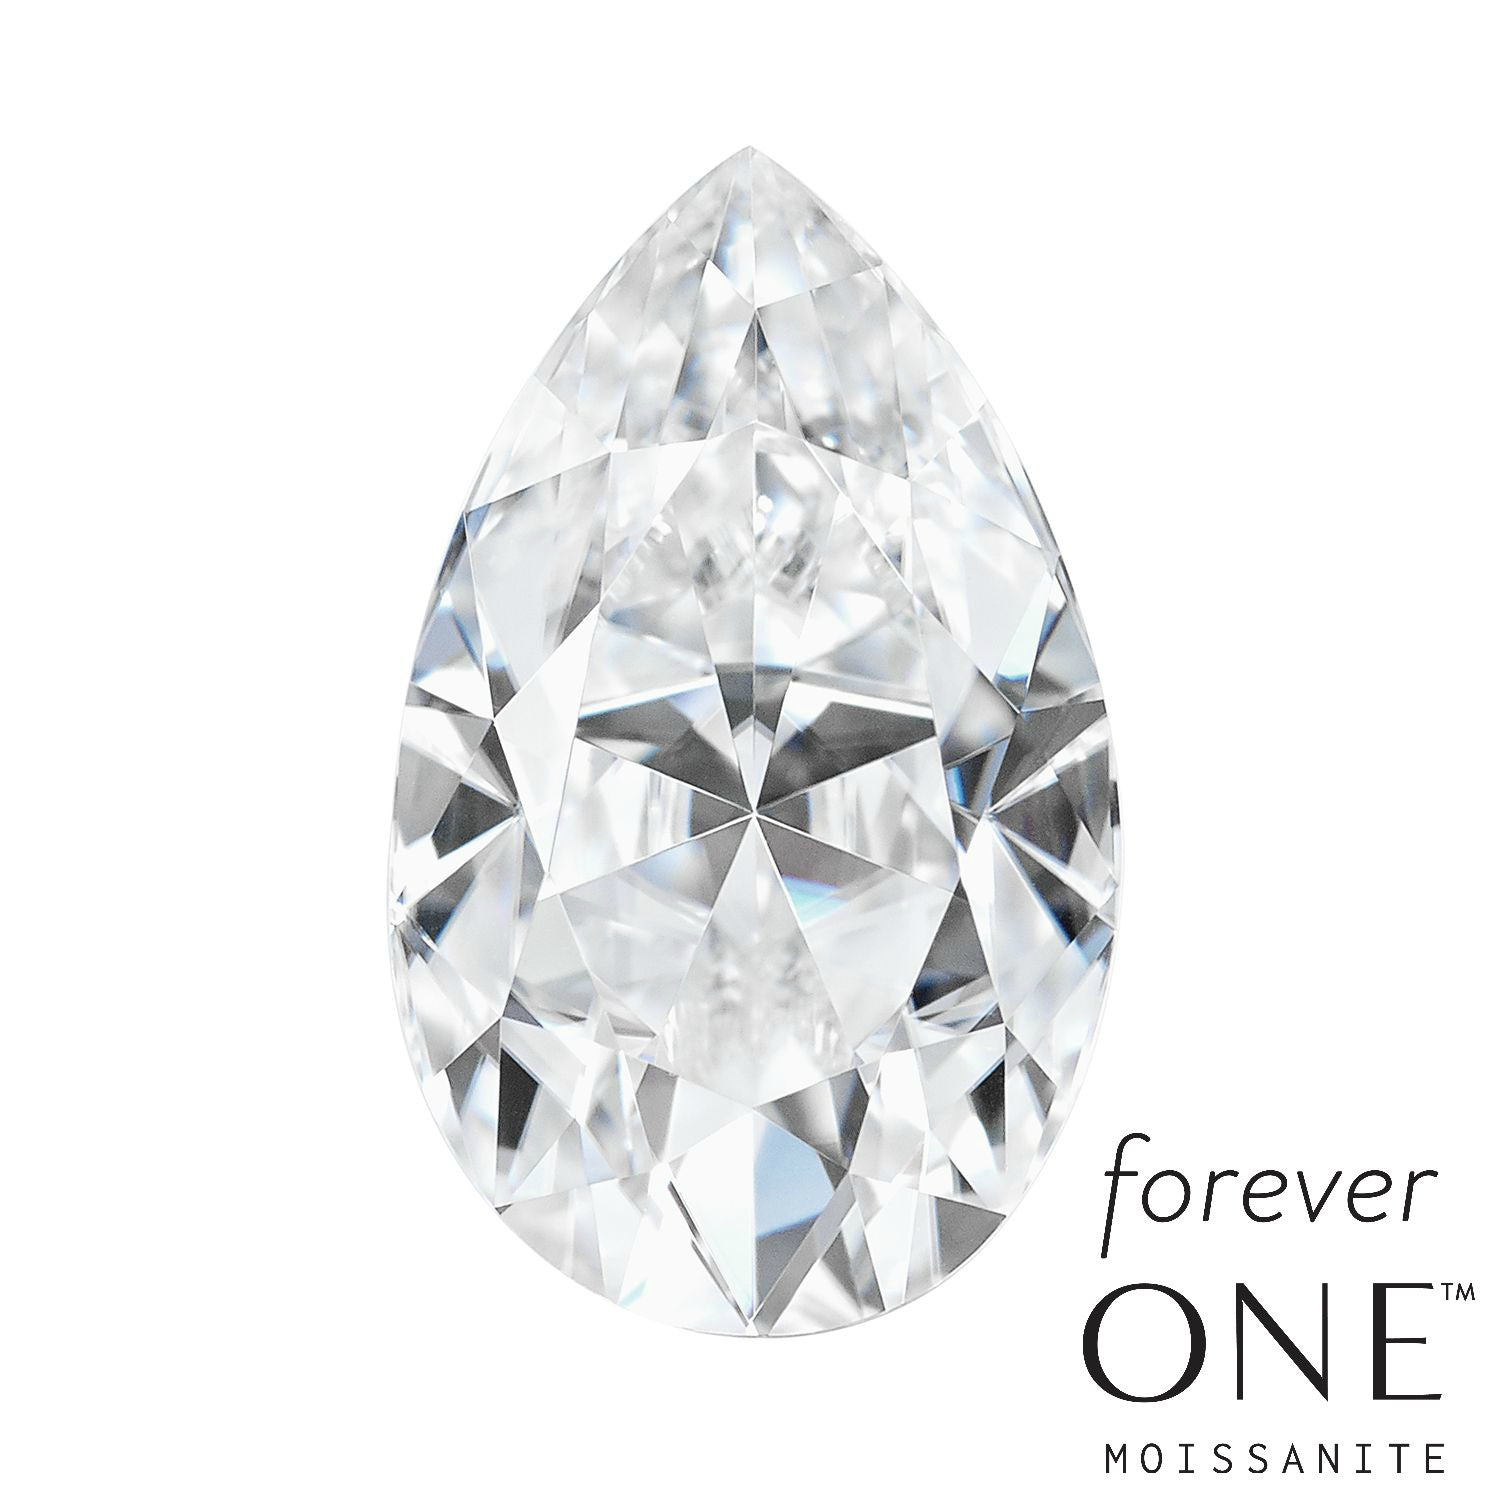 watch youtube forever harro vs diamond one gemstone moissanite gem